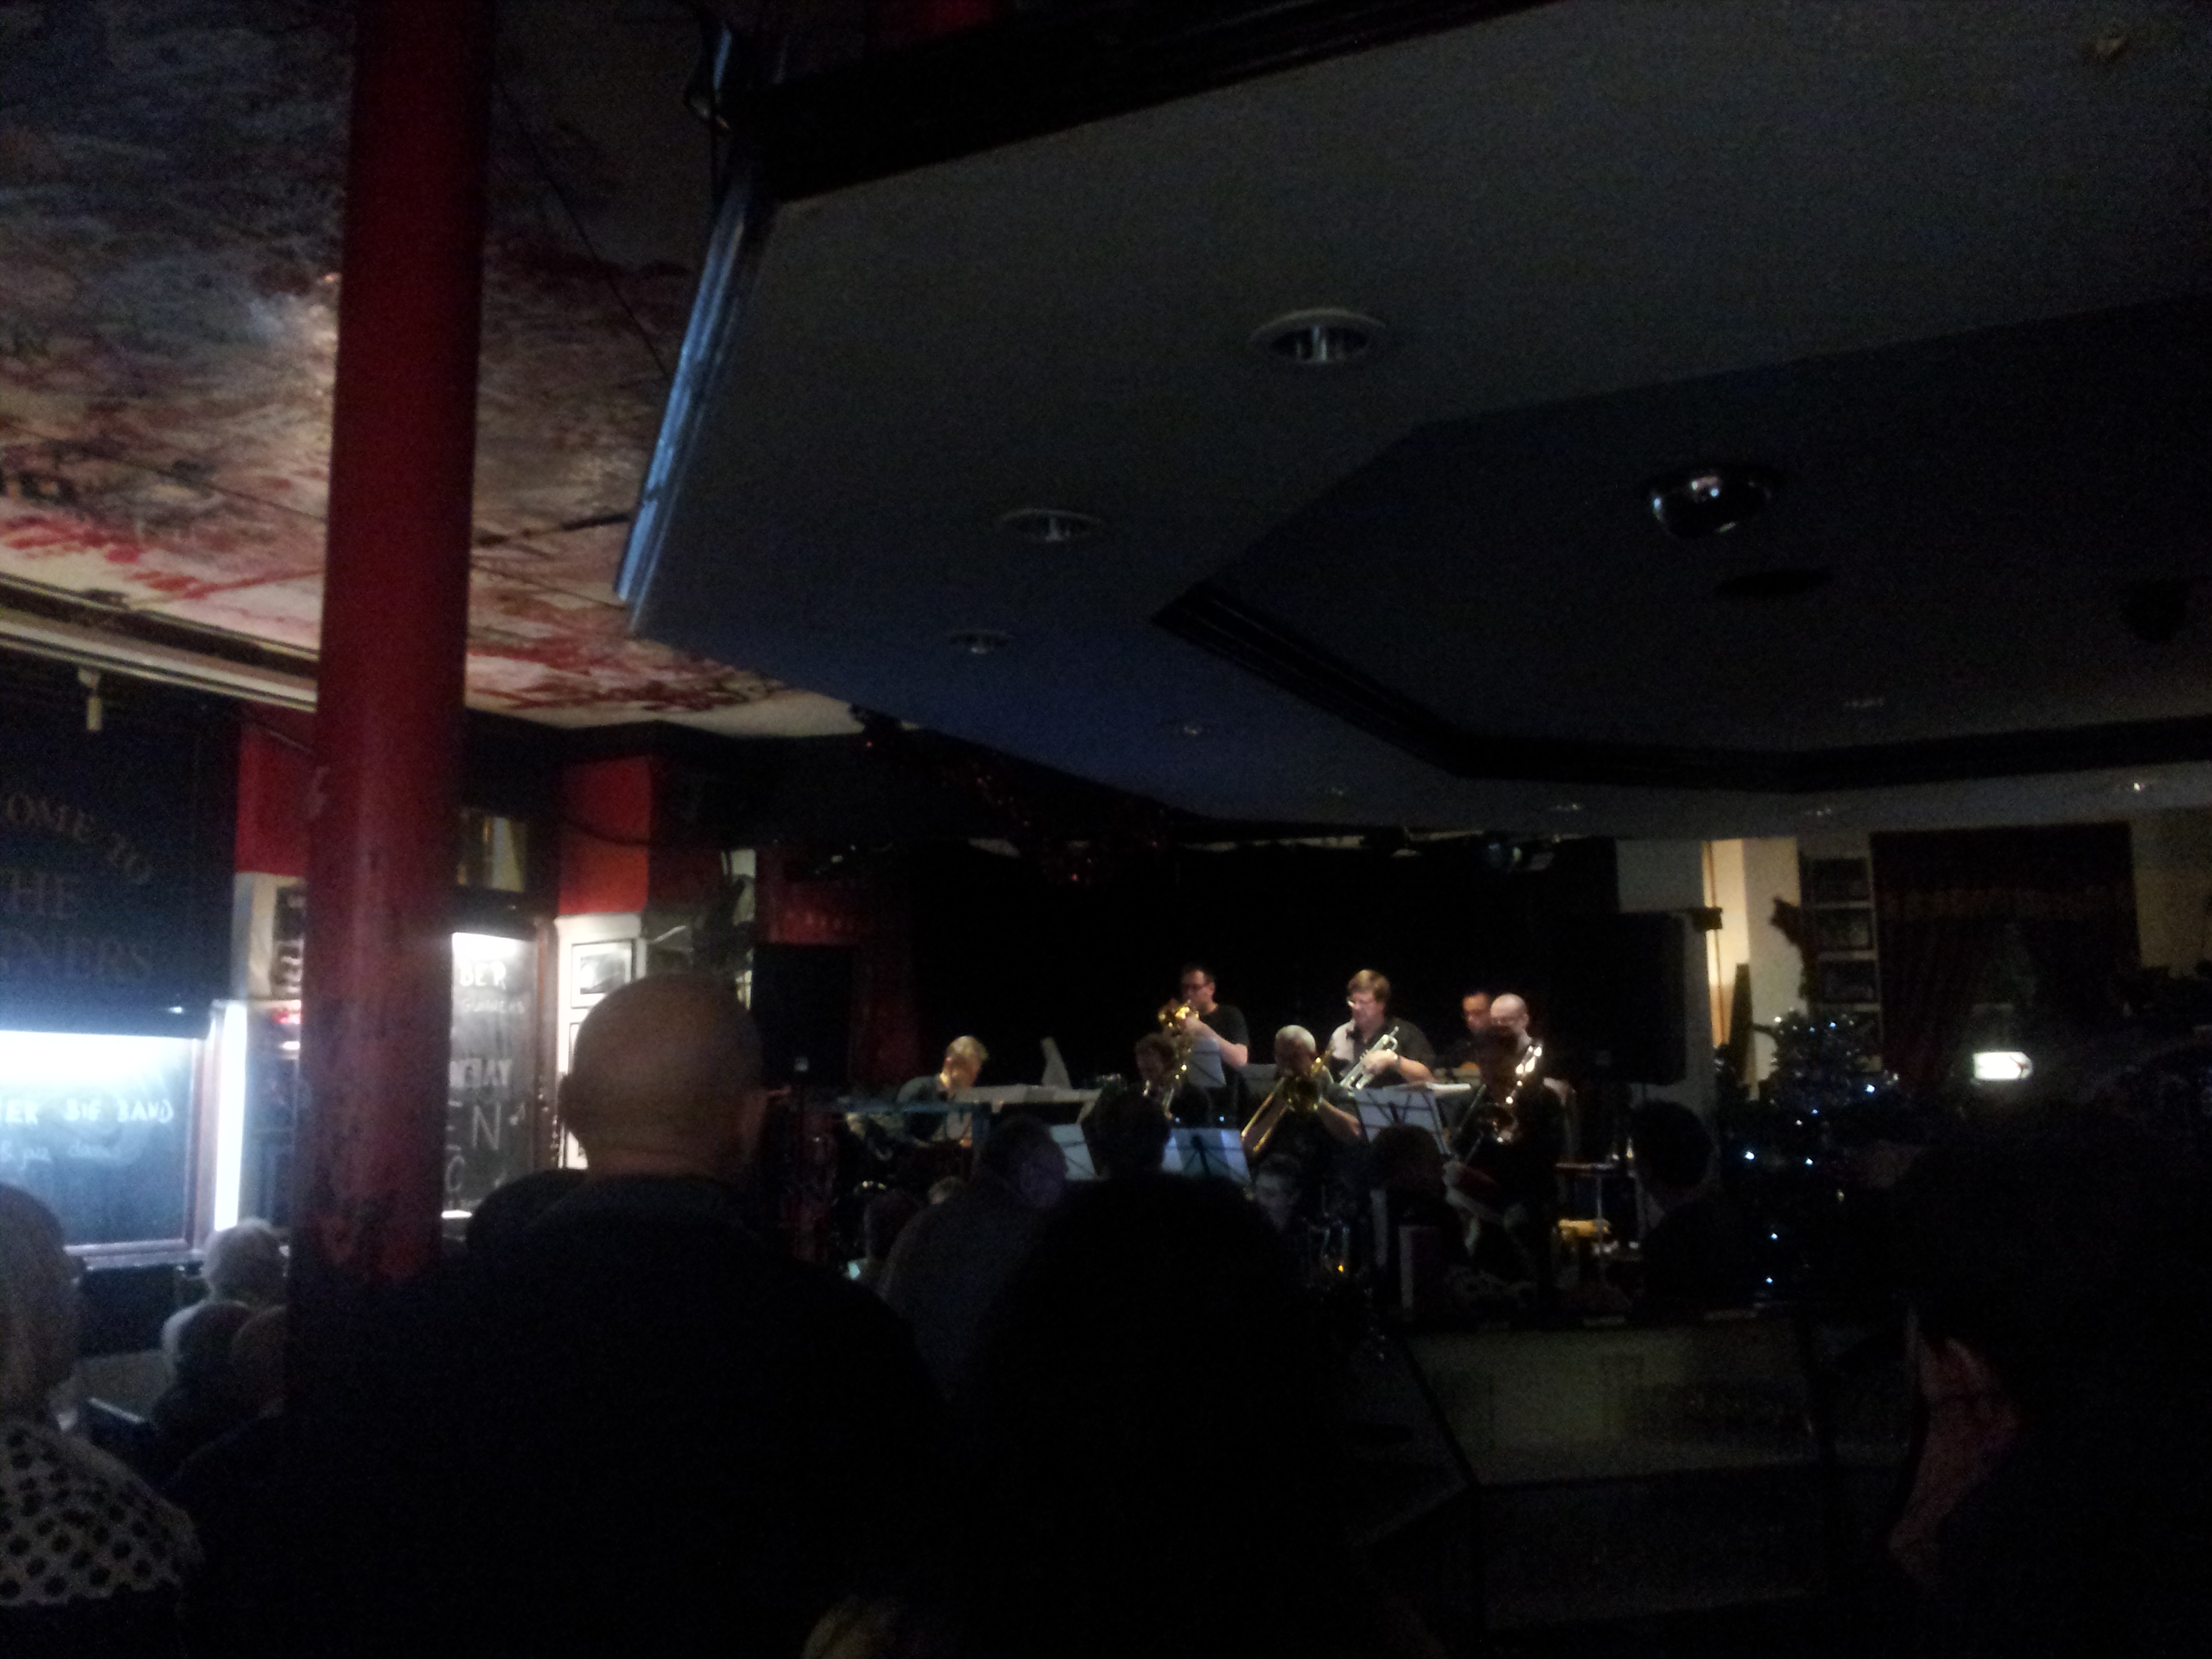 xx Big Band plays every Wednesday (on stage at 8.30pm) at the Gunners Pub on Blackstock Road. Free entry.